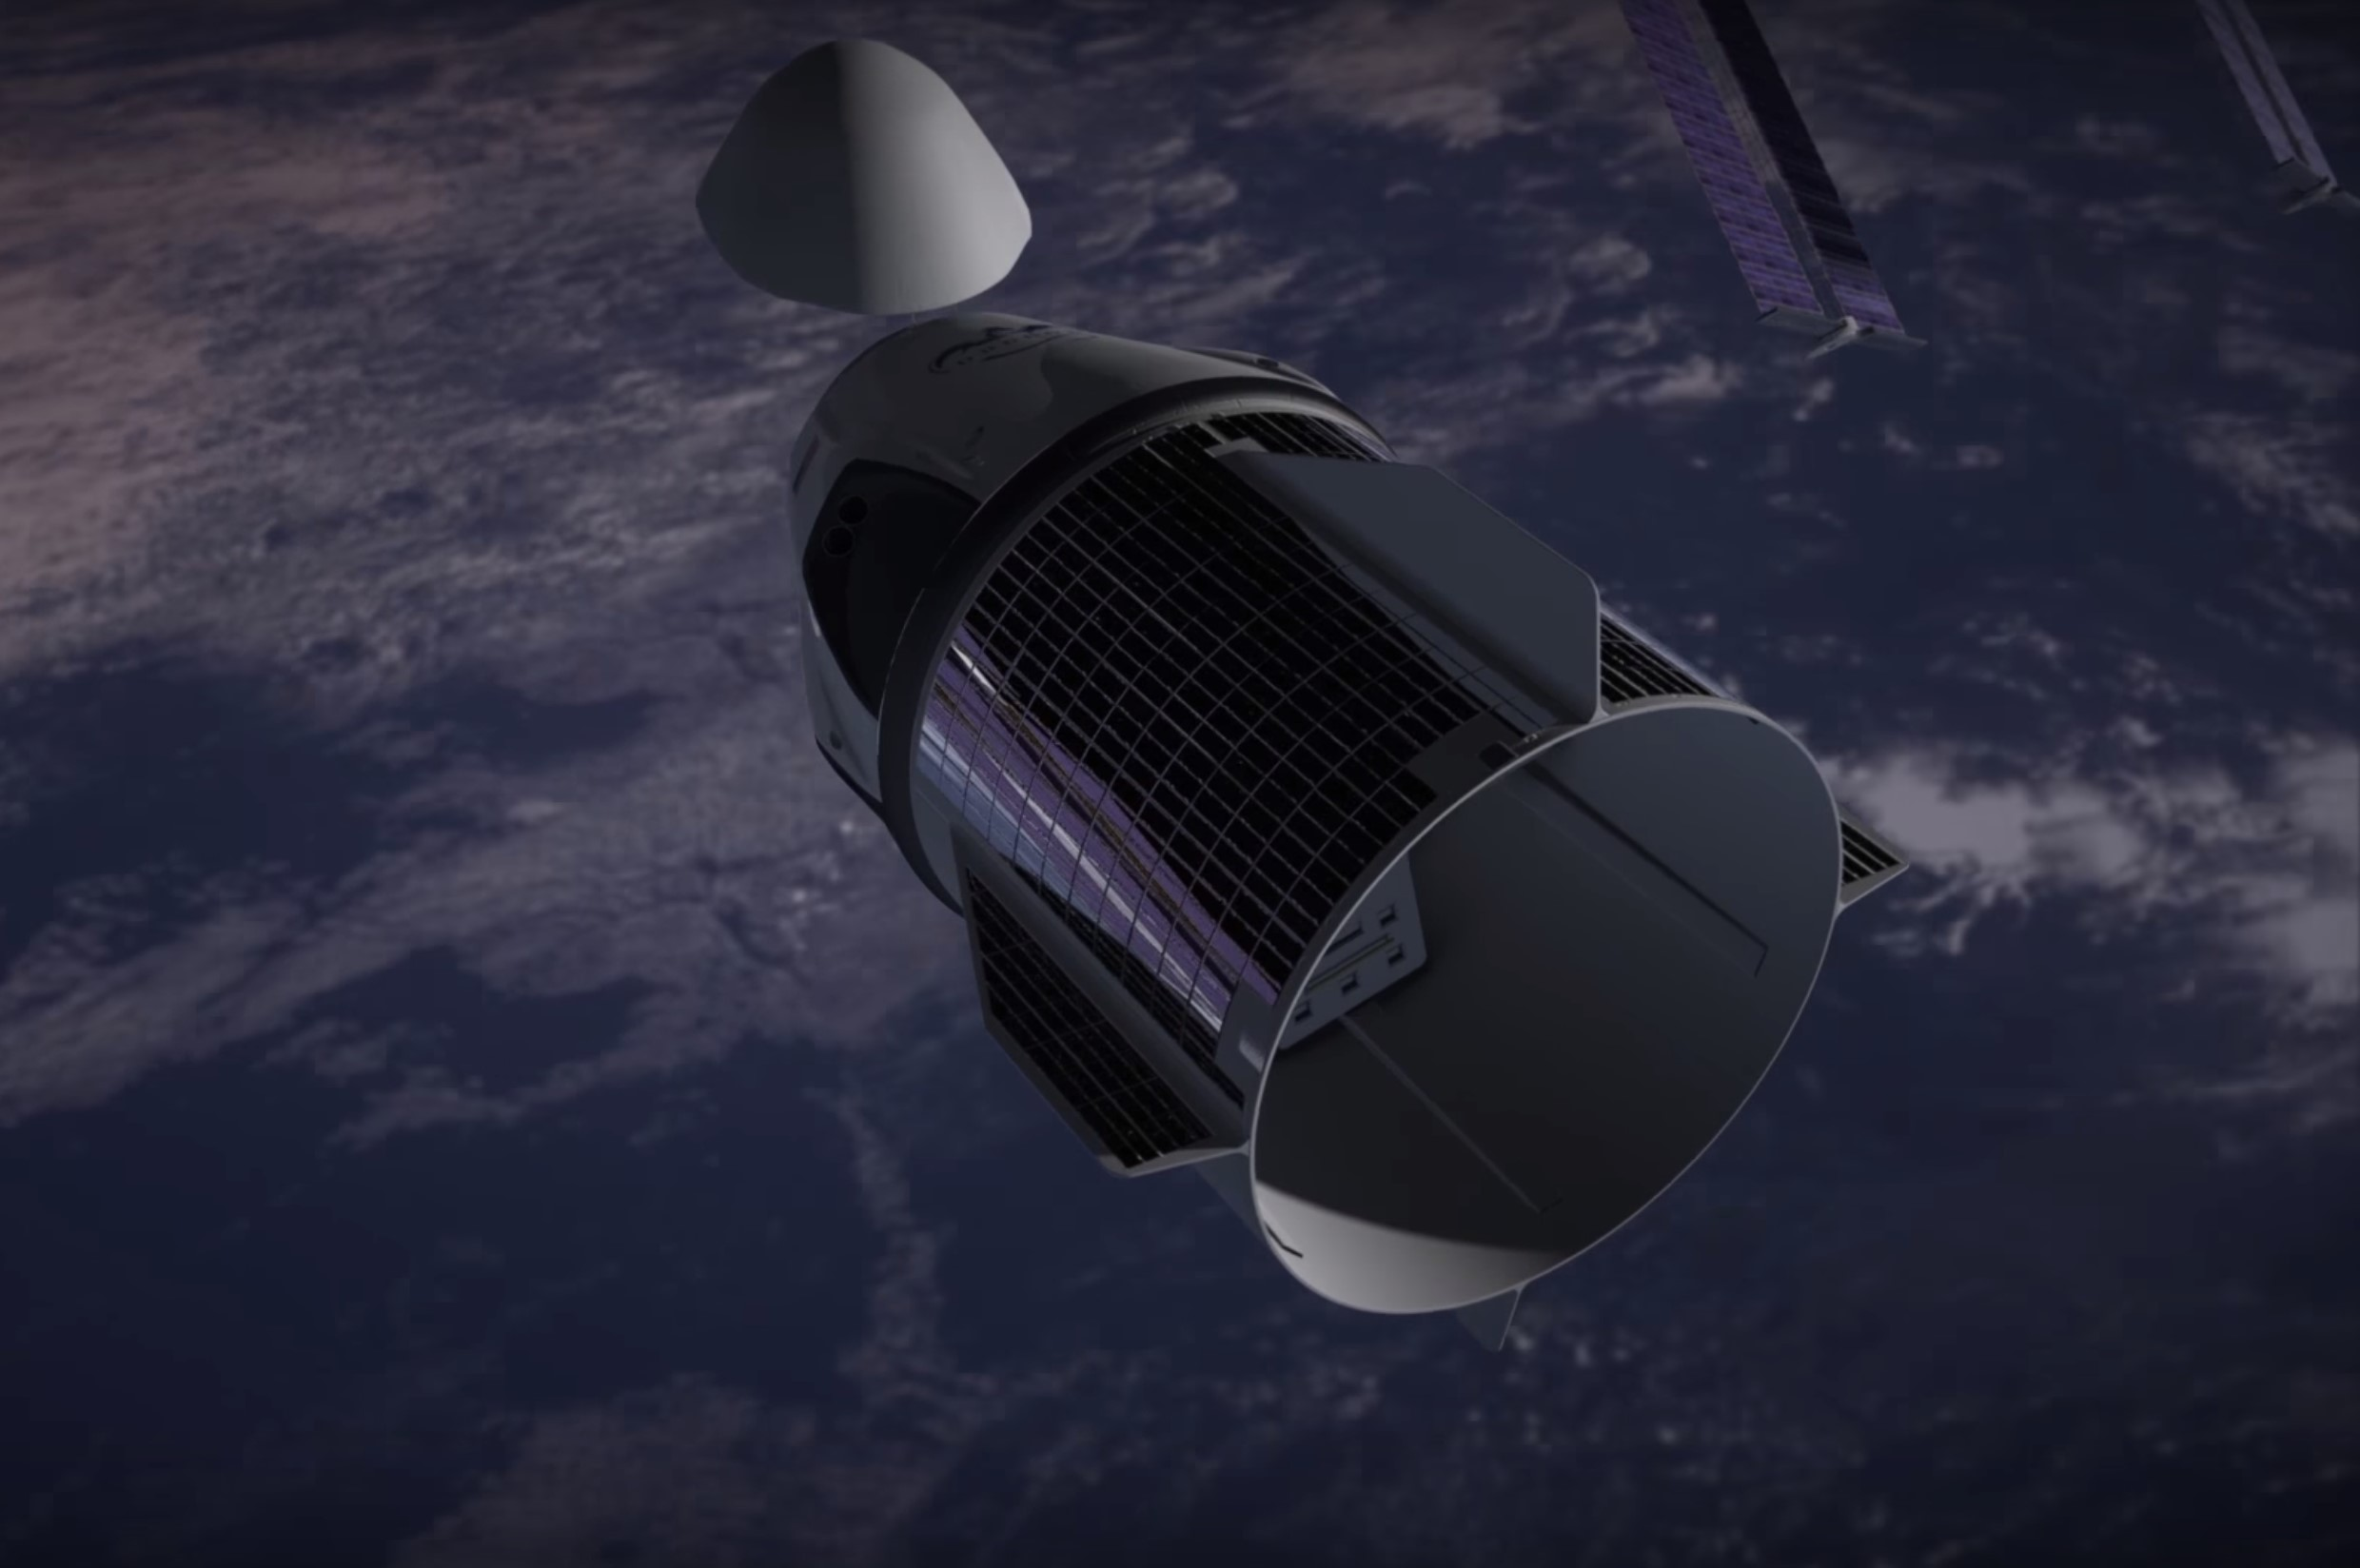 Crew Dragon render 2014 (SpaceX) 4